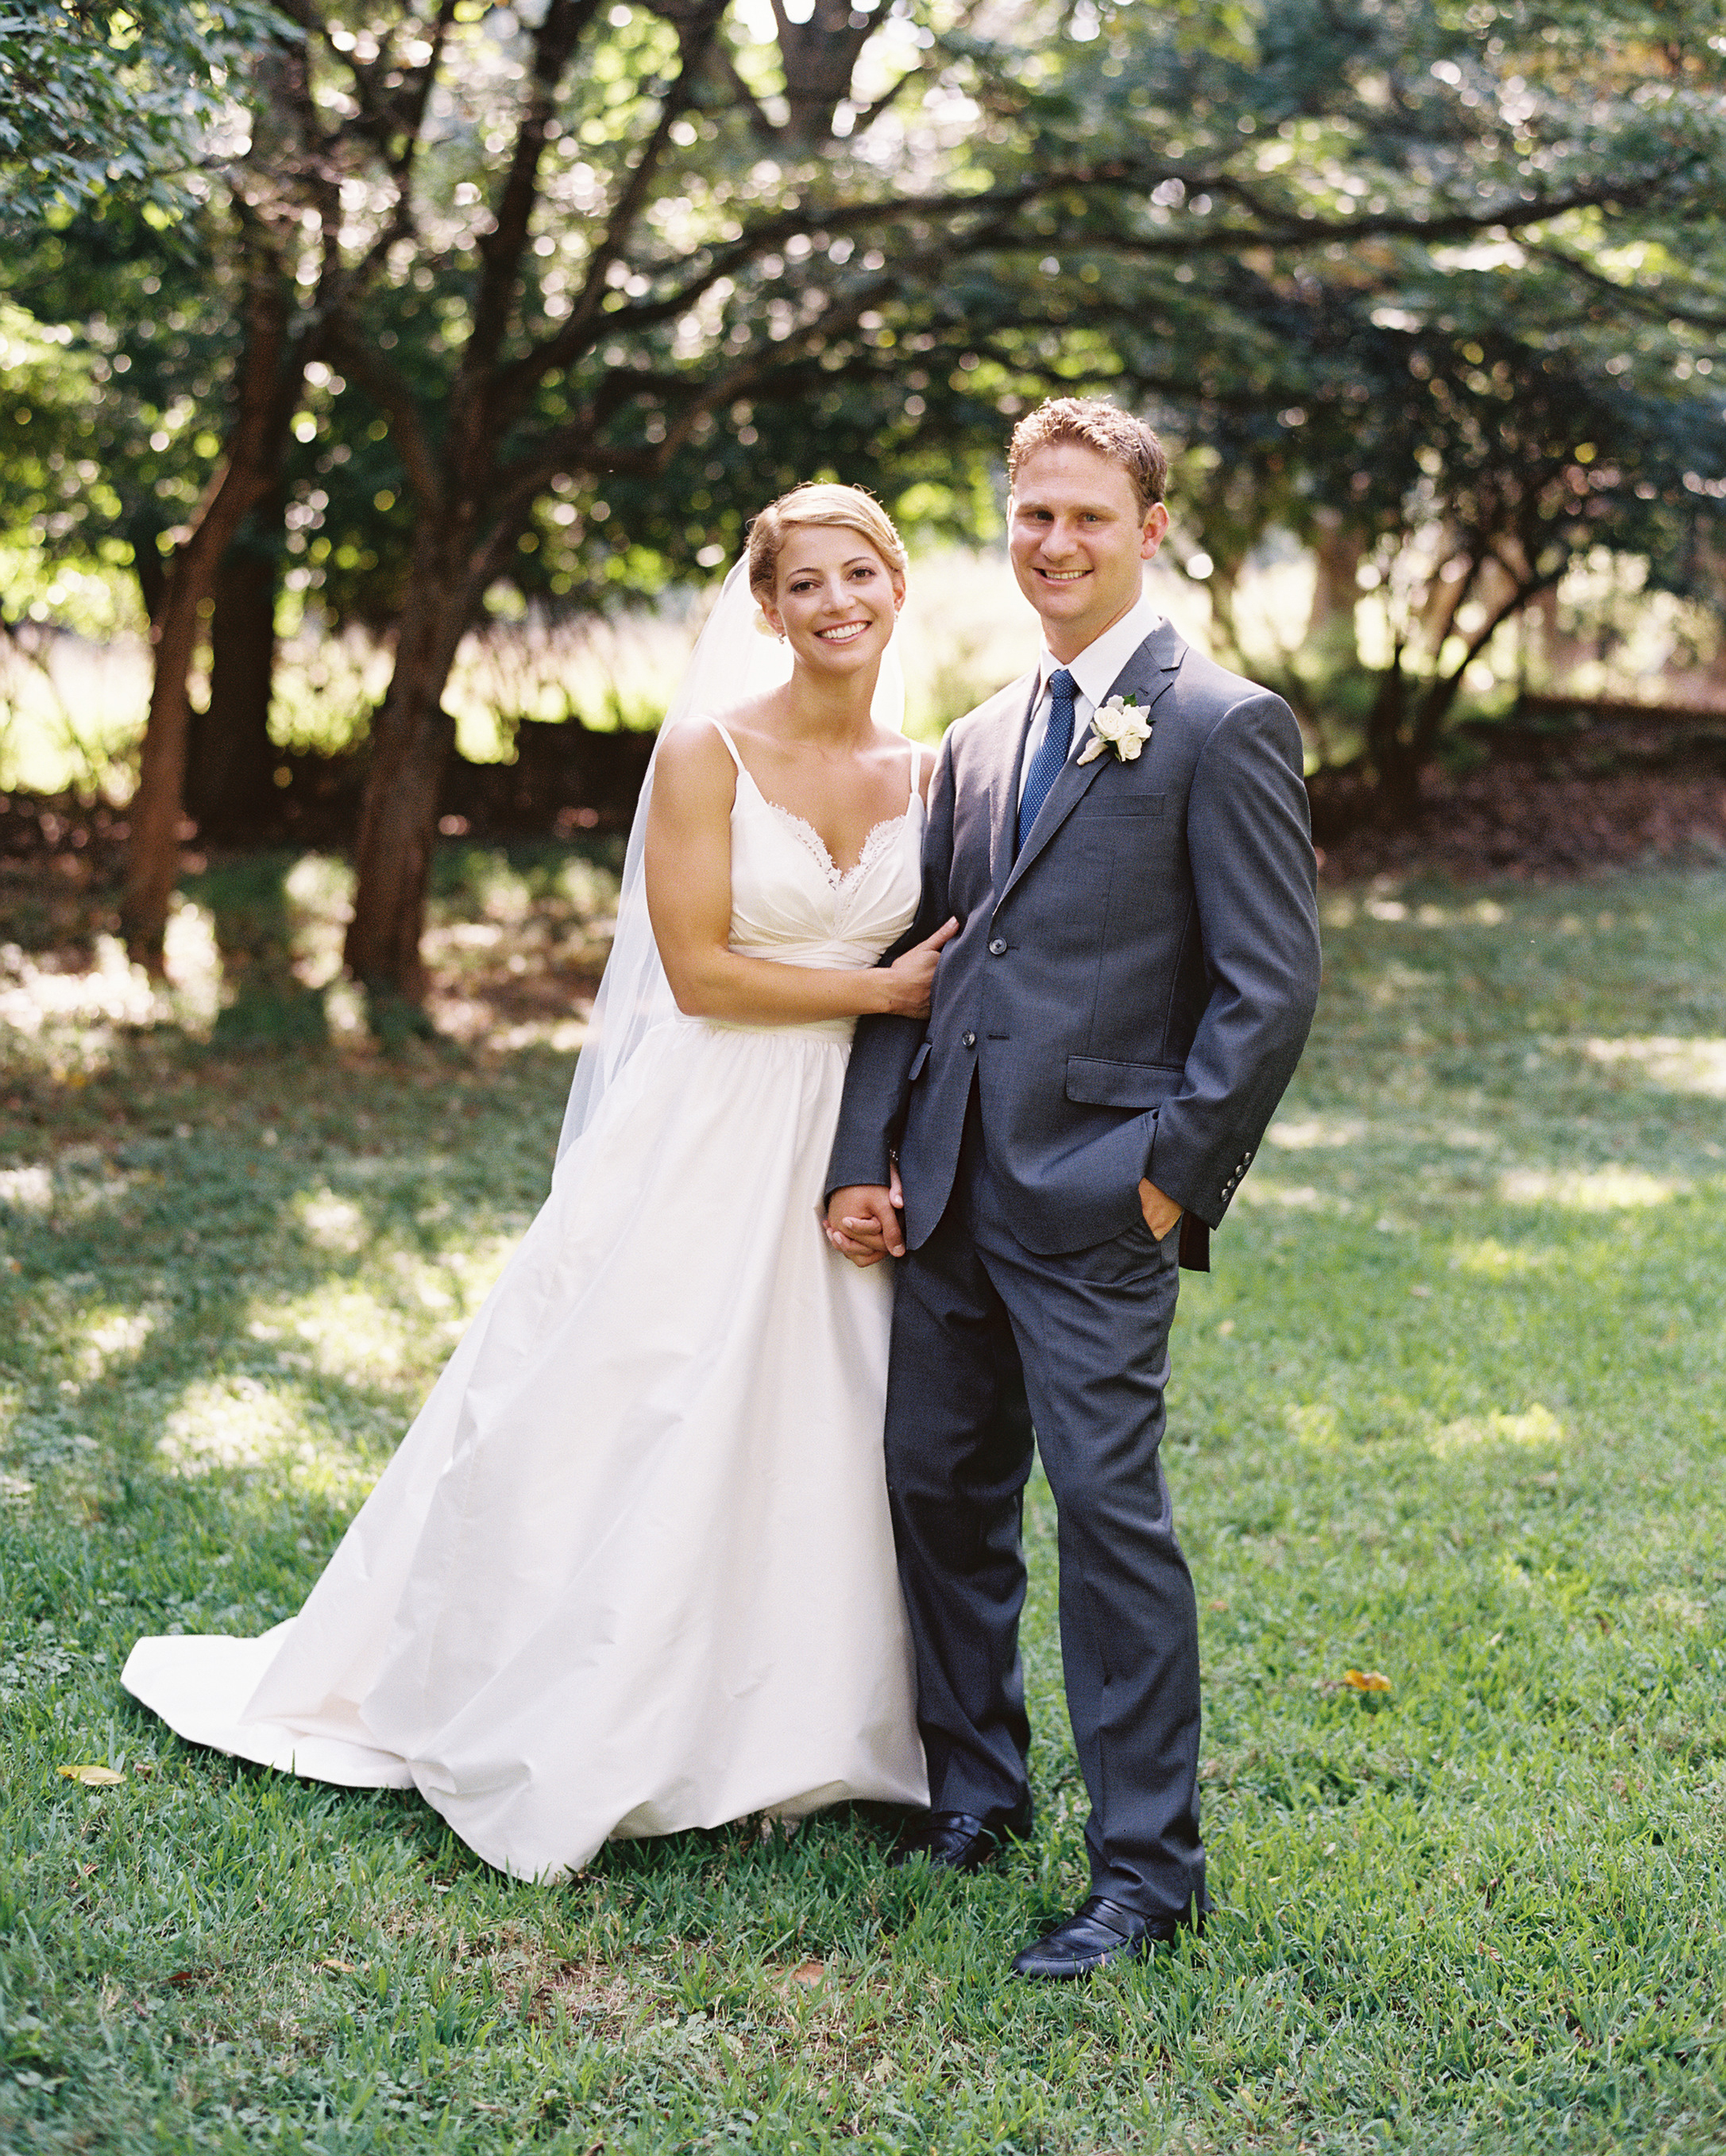 beth-scott-wedding-couple-0430-s112077-0715.jpg